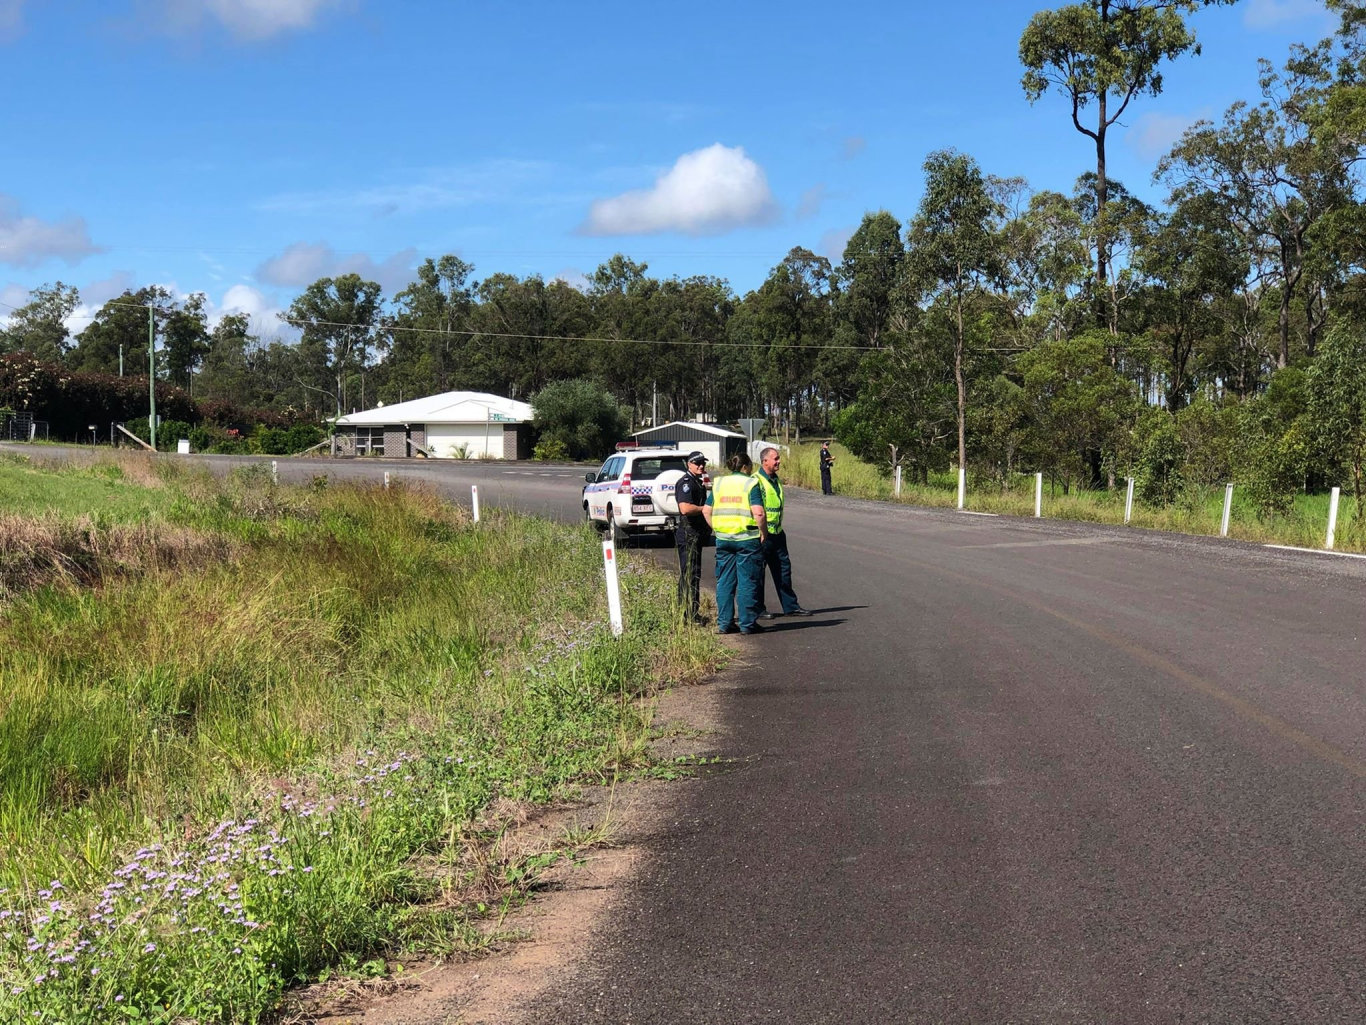 Police on scene of a search through bushland for a suspected taxi thief near the intersection of Three Mile Rd and the Bruce Hwy near Maryborough.